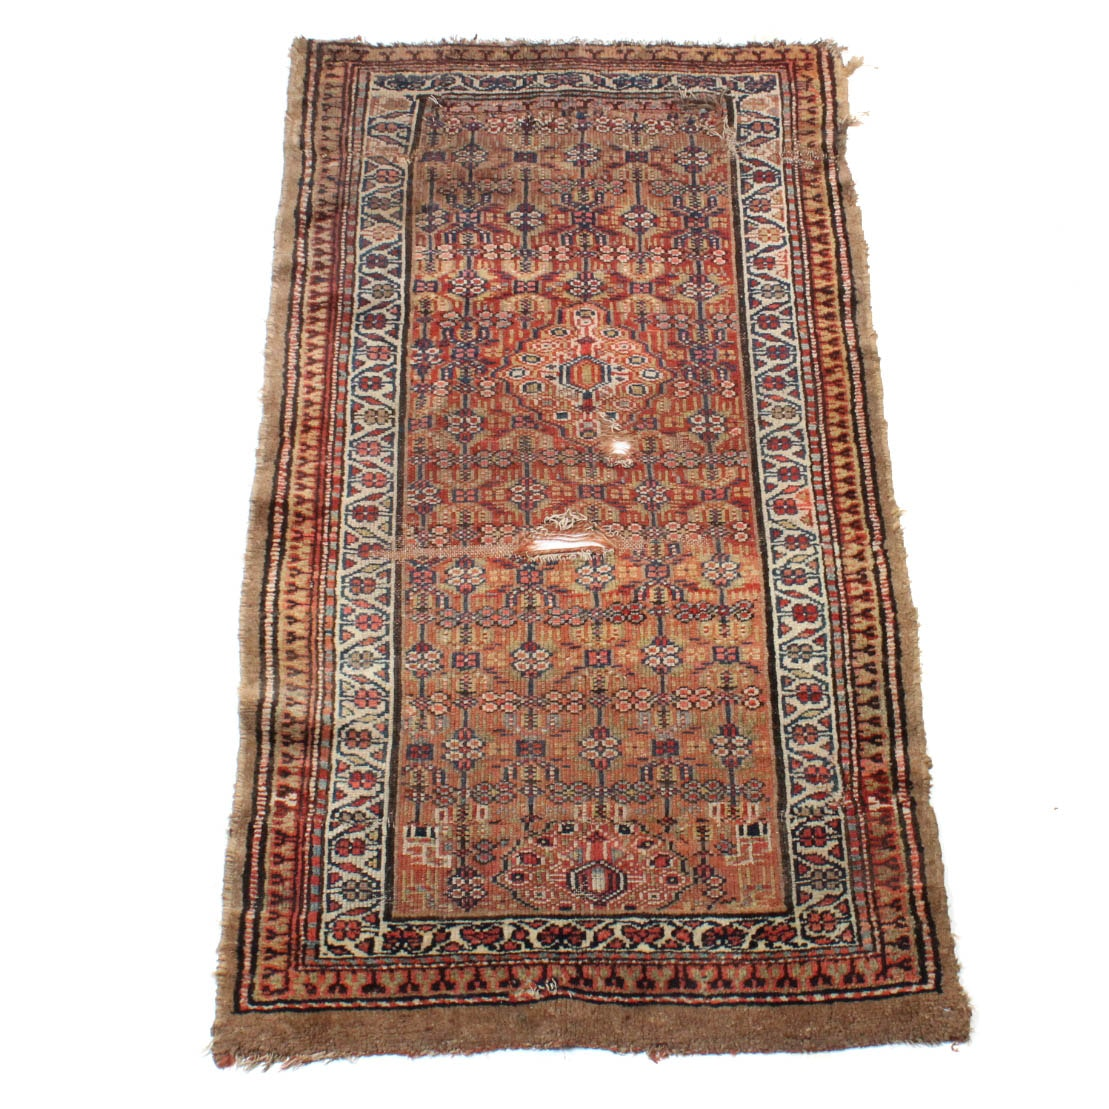 Antique Hand-Knotted Serab Rug